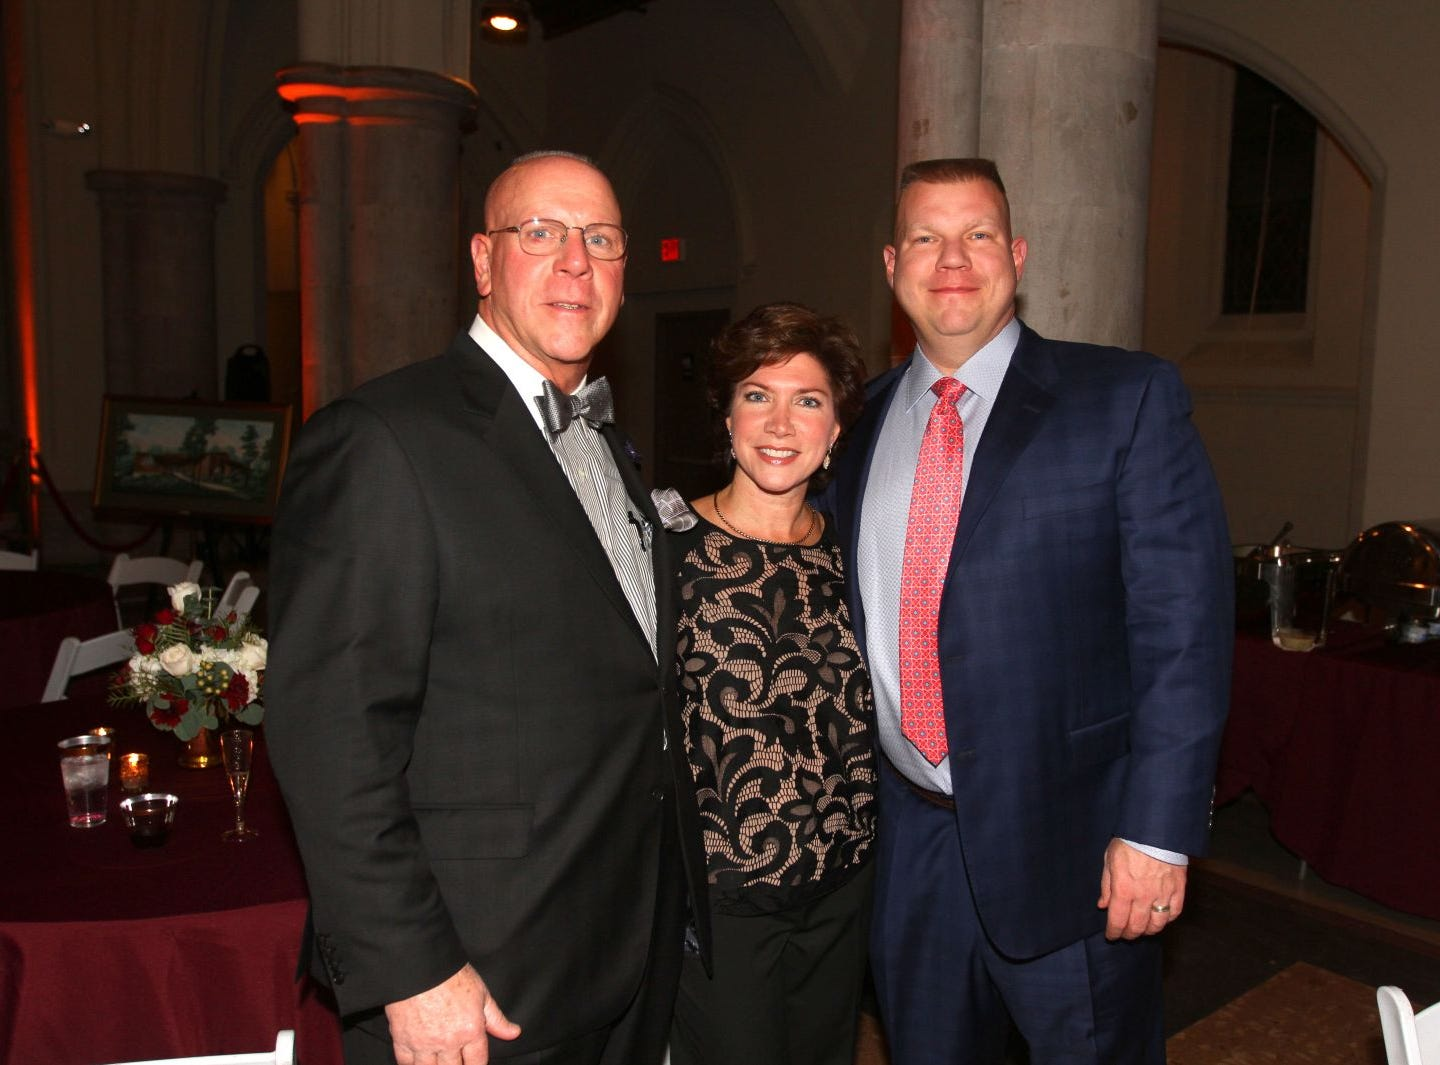 Bill Brock; Lori Brock; Tim Brock. Wyckoff Family YMCA hosted its 75th anniversary gala to celebrate its benefactors, held at the Rio Vista seminary in Mahwah. 11/16/2018